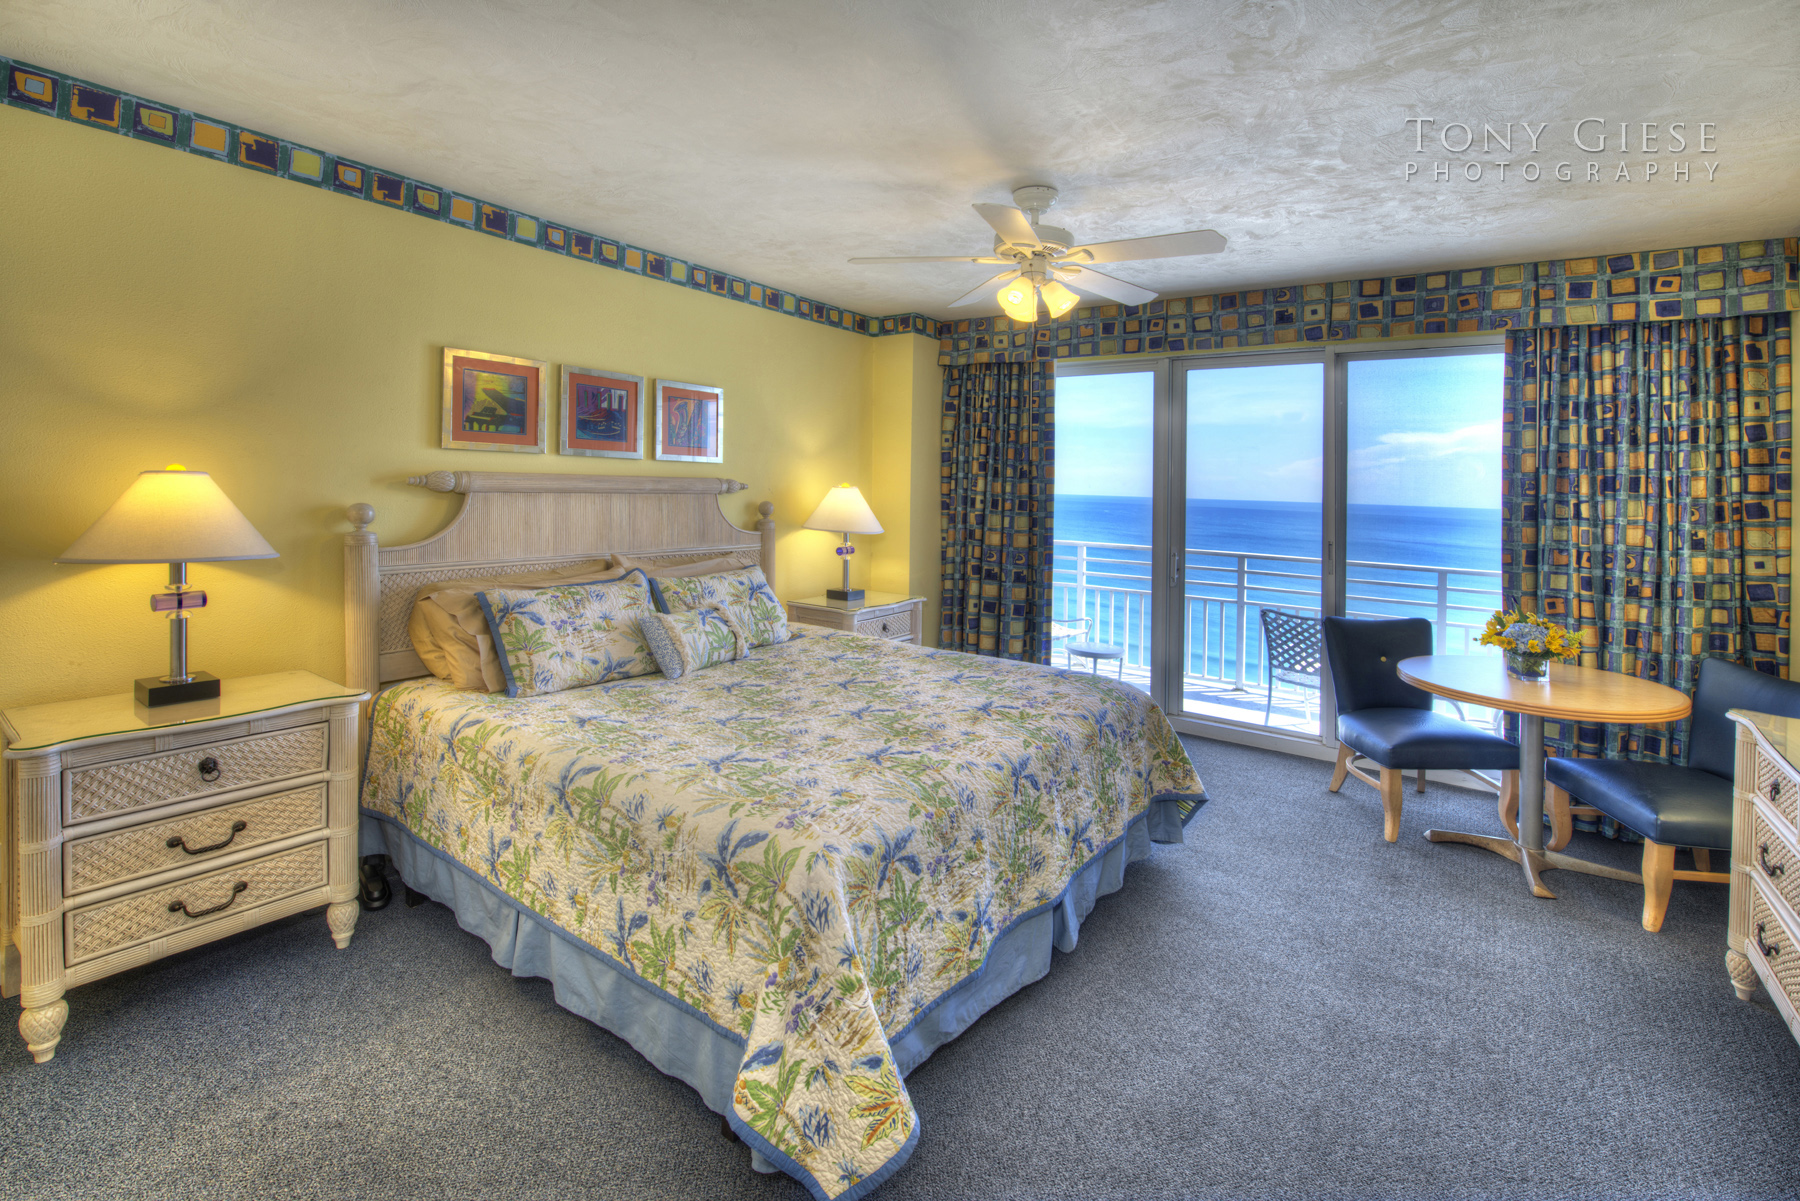 Condo Master bedroom with a ocean view, Ocean Walk Resort, Daytona Beach, Florida. Photo by Tony Giese Photography